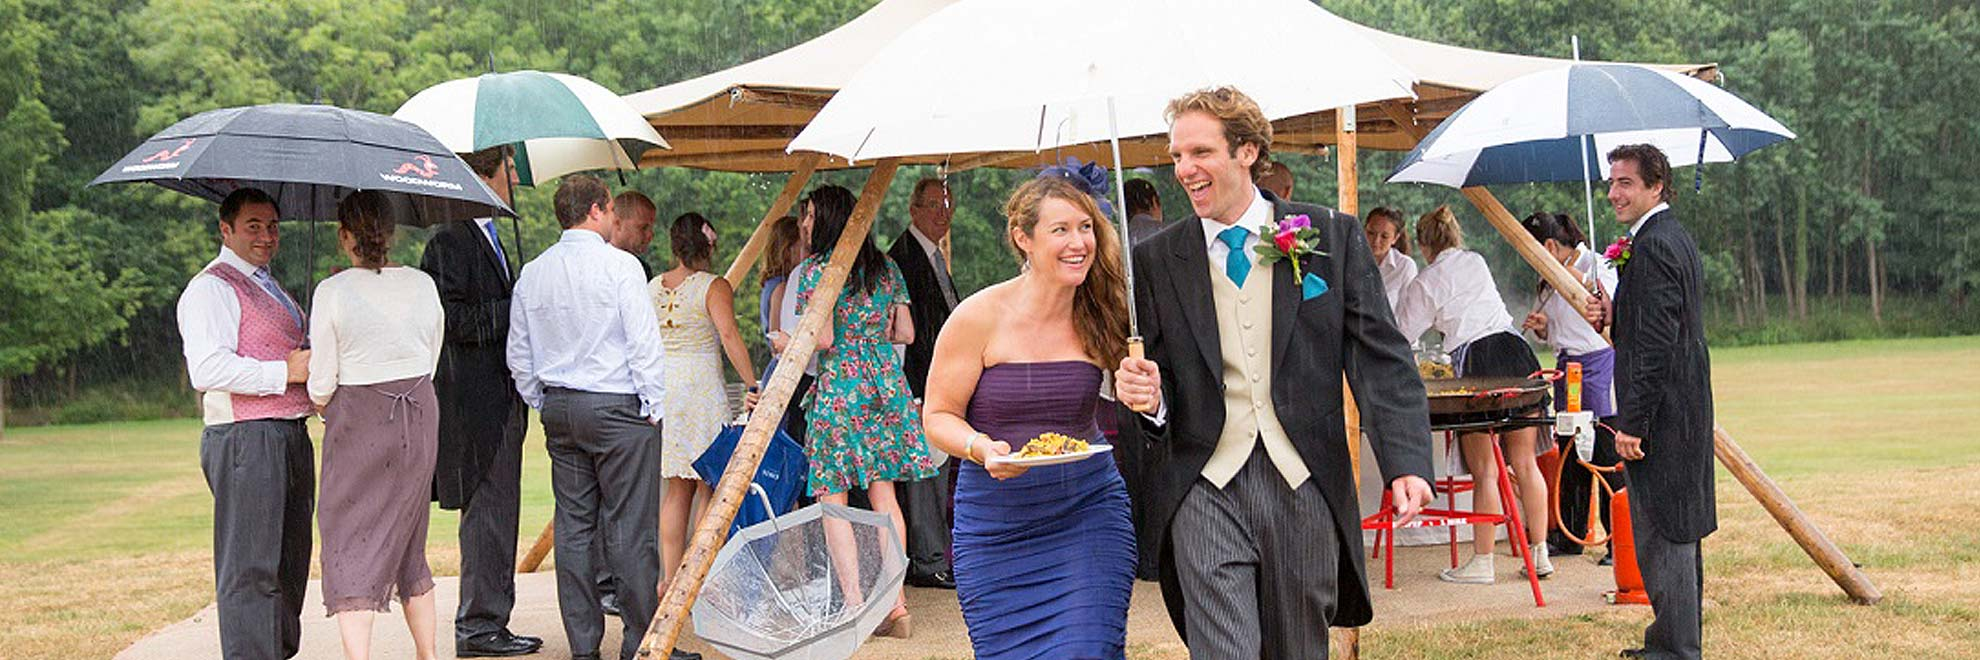 Full_Little-Hat_Wedding_Teepee_Rain_Umbrella_Laughing.jpg